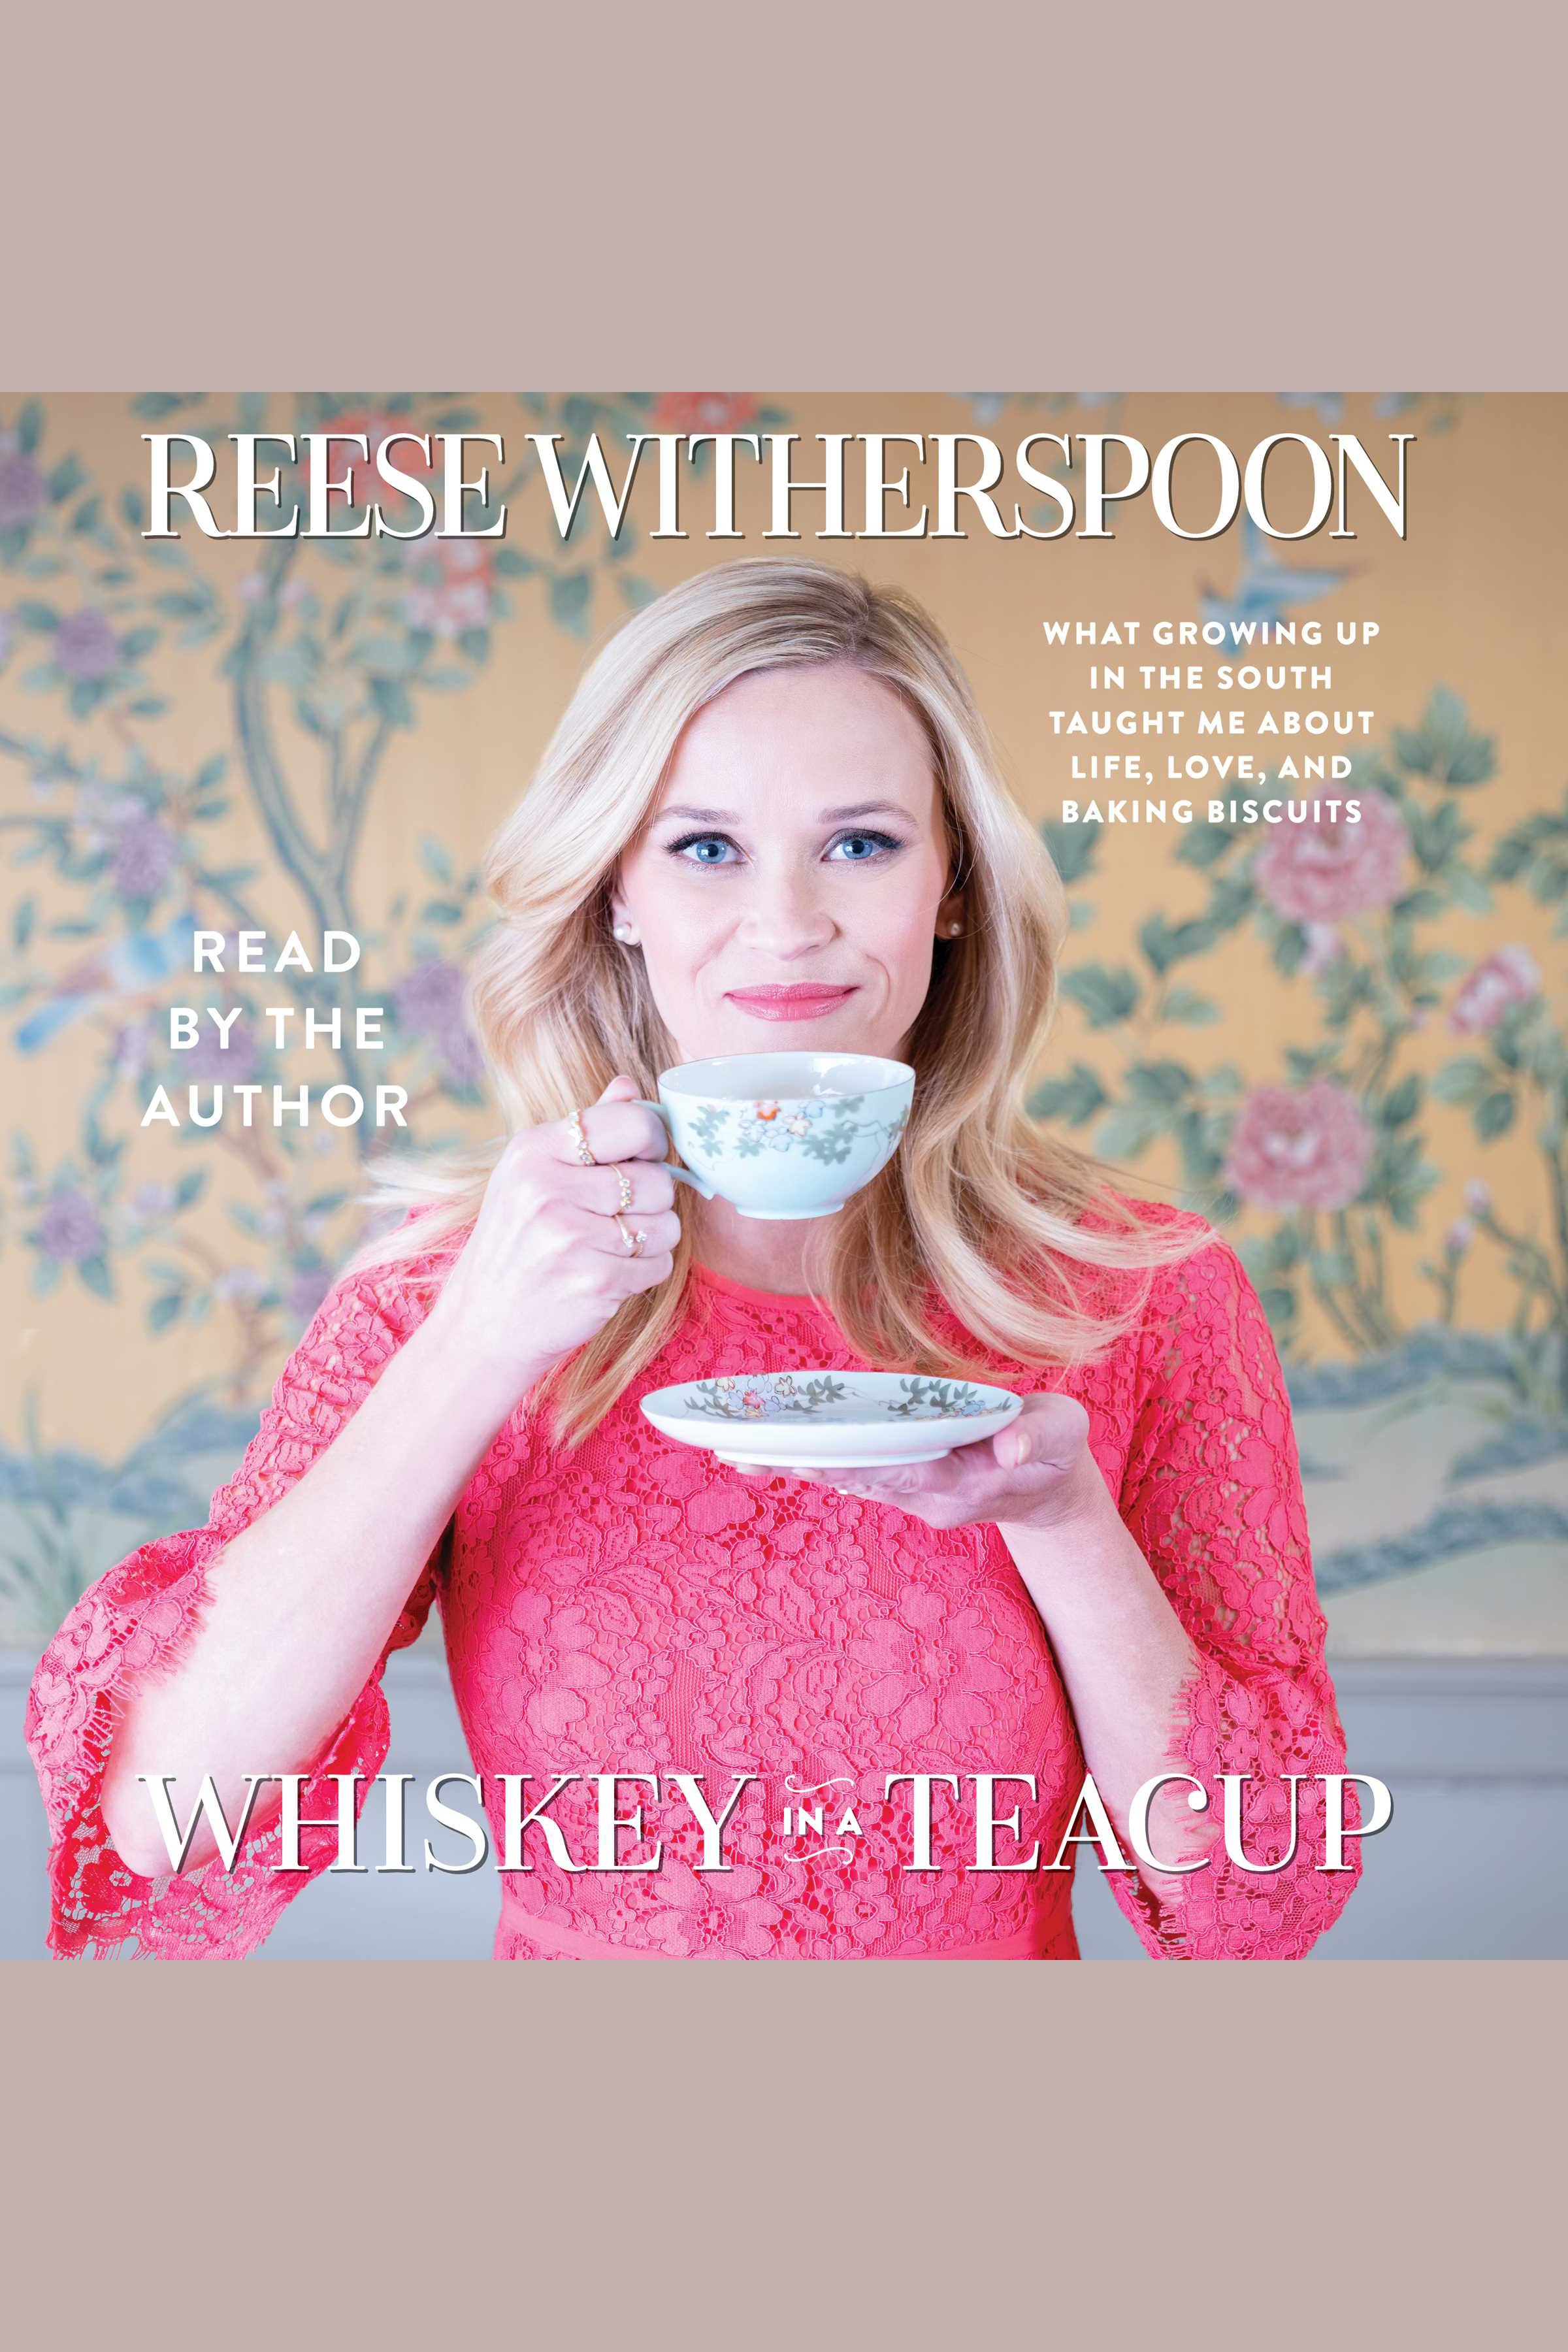 Whiskey in a teacup what growing up in the South taught me about life, love, and baking biscuits cover image